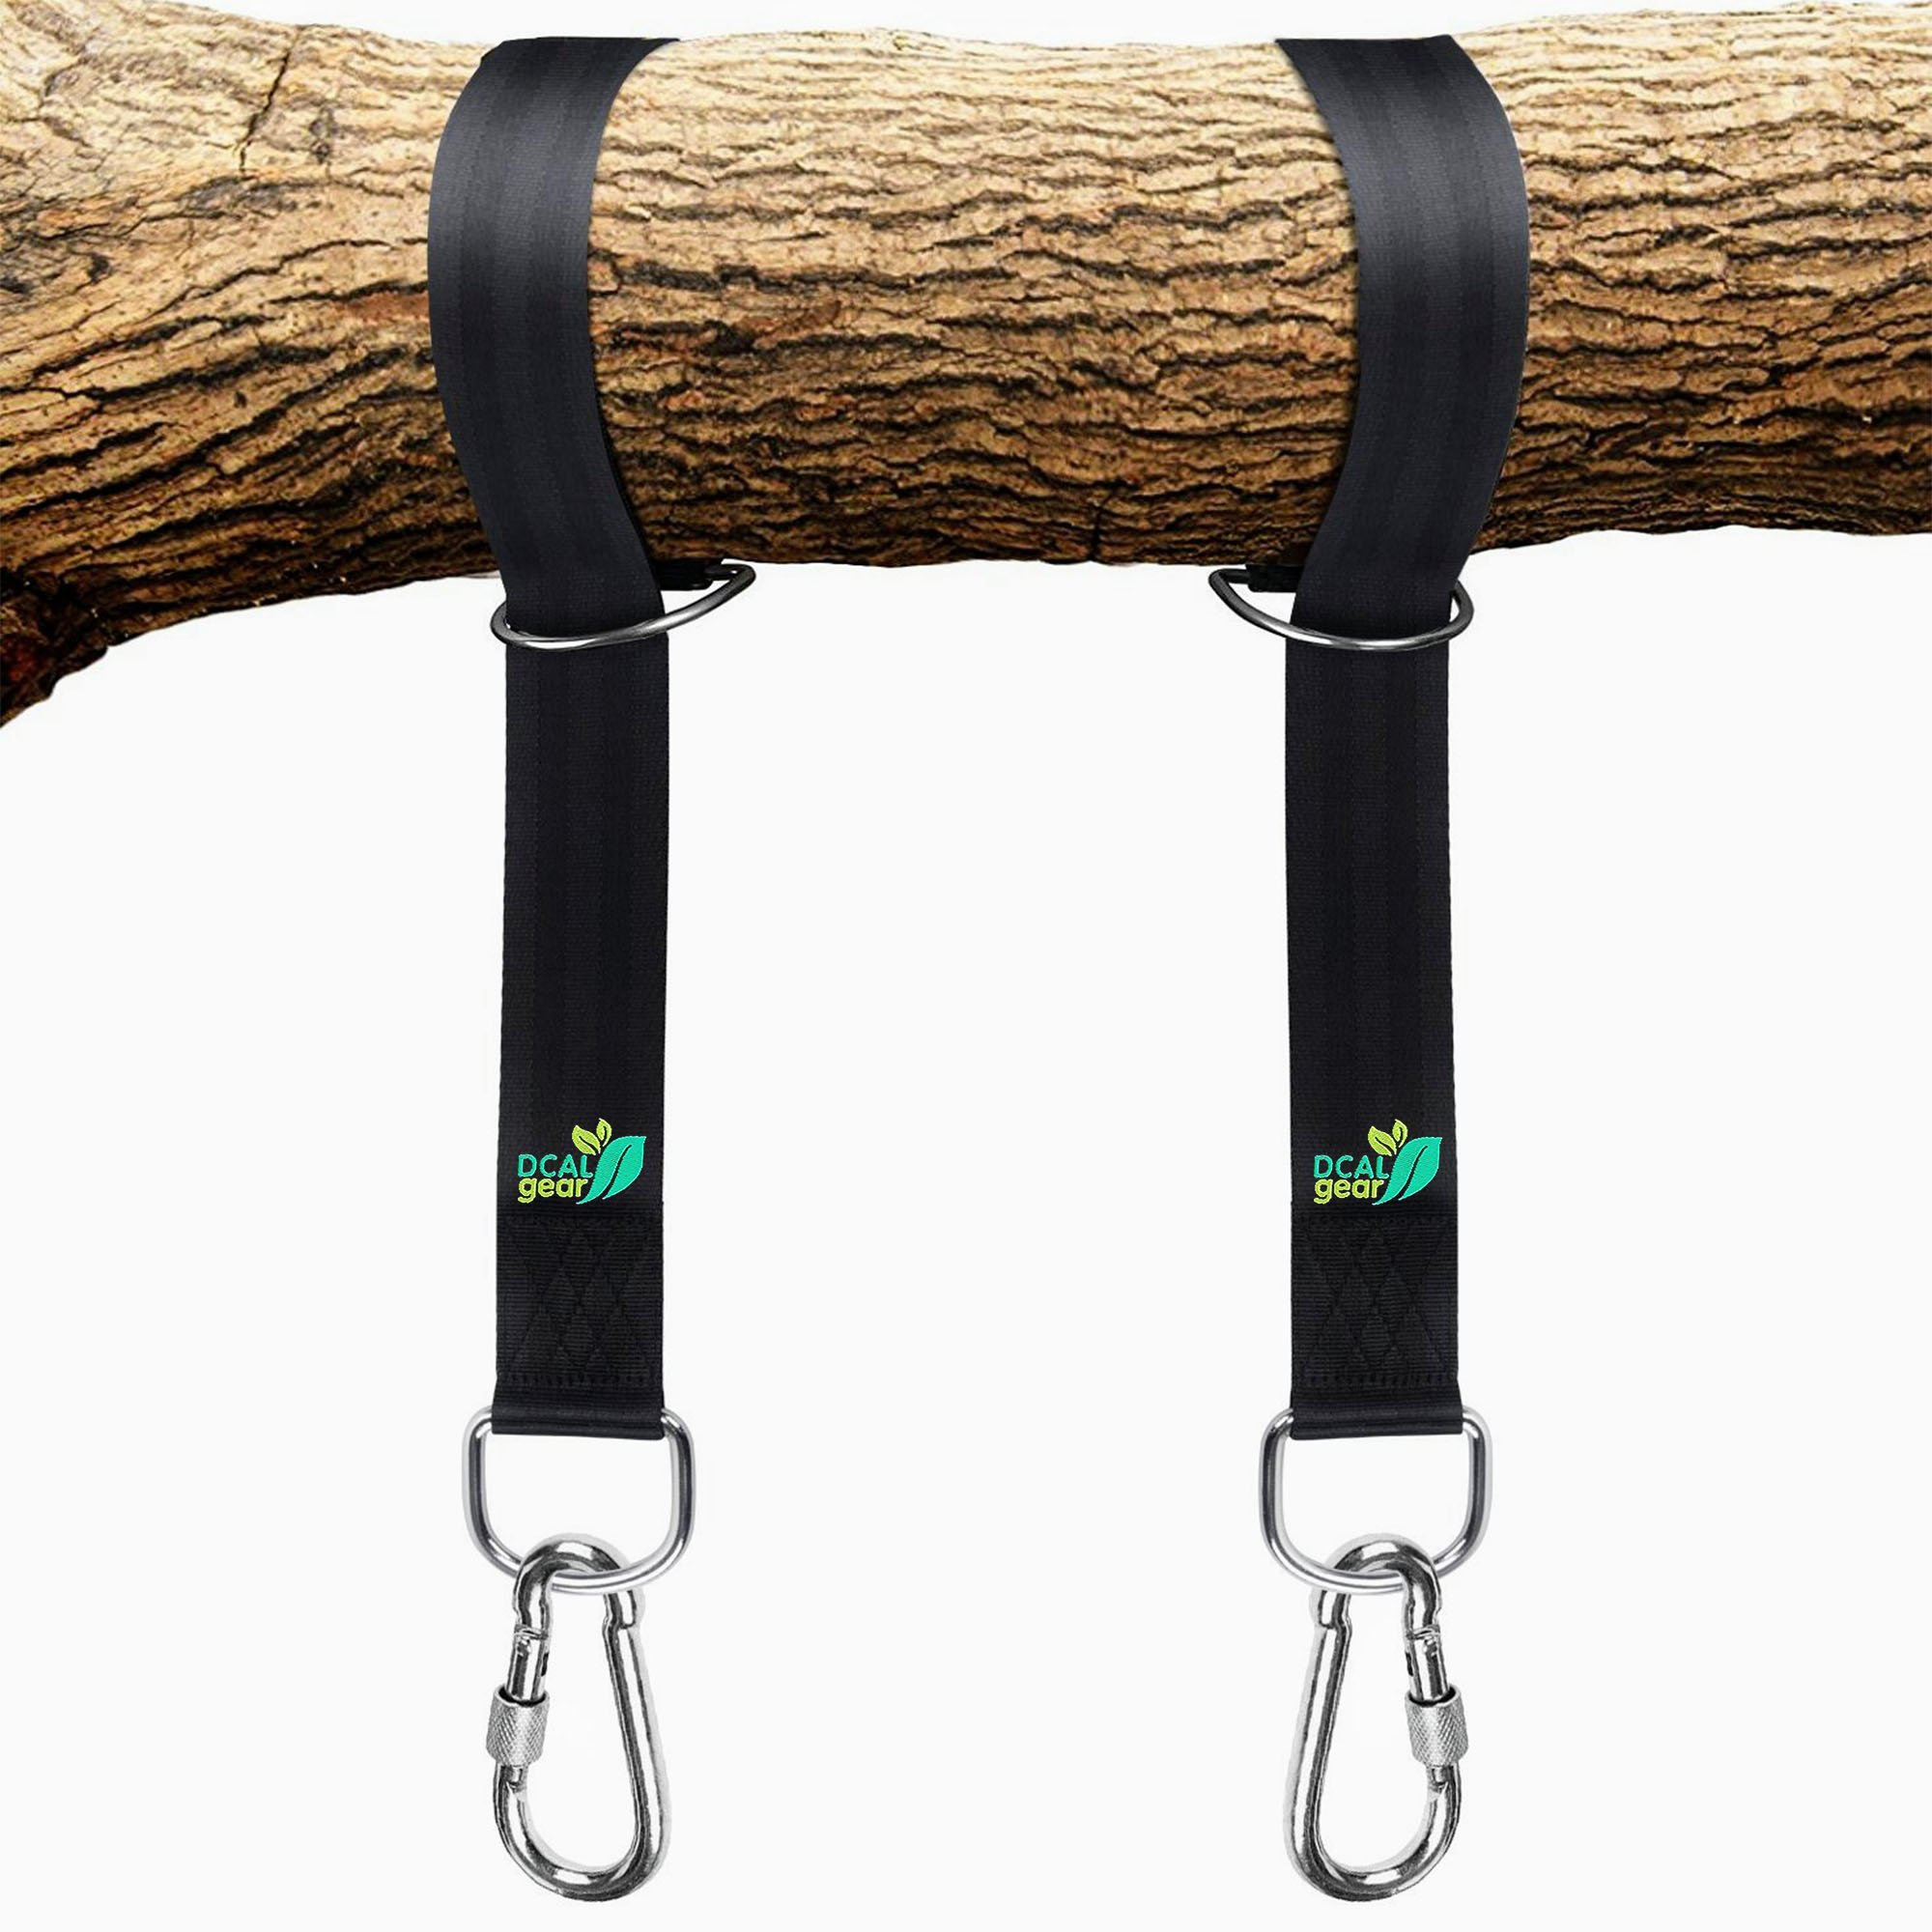 Best Tree Swing Hanging Kit - Easy 30 Sec Install on Outdoor Toys - Two 5 ft Tree Straps Hold 2000 lb - Safe, Large Carabiners & D Rings - Fits Hammocks & Most Swing Seats - Better Than Chain or Rope! by DCAL Gear